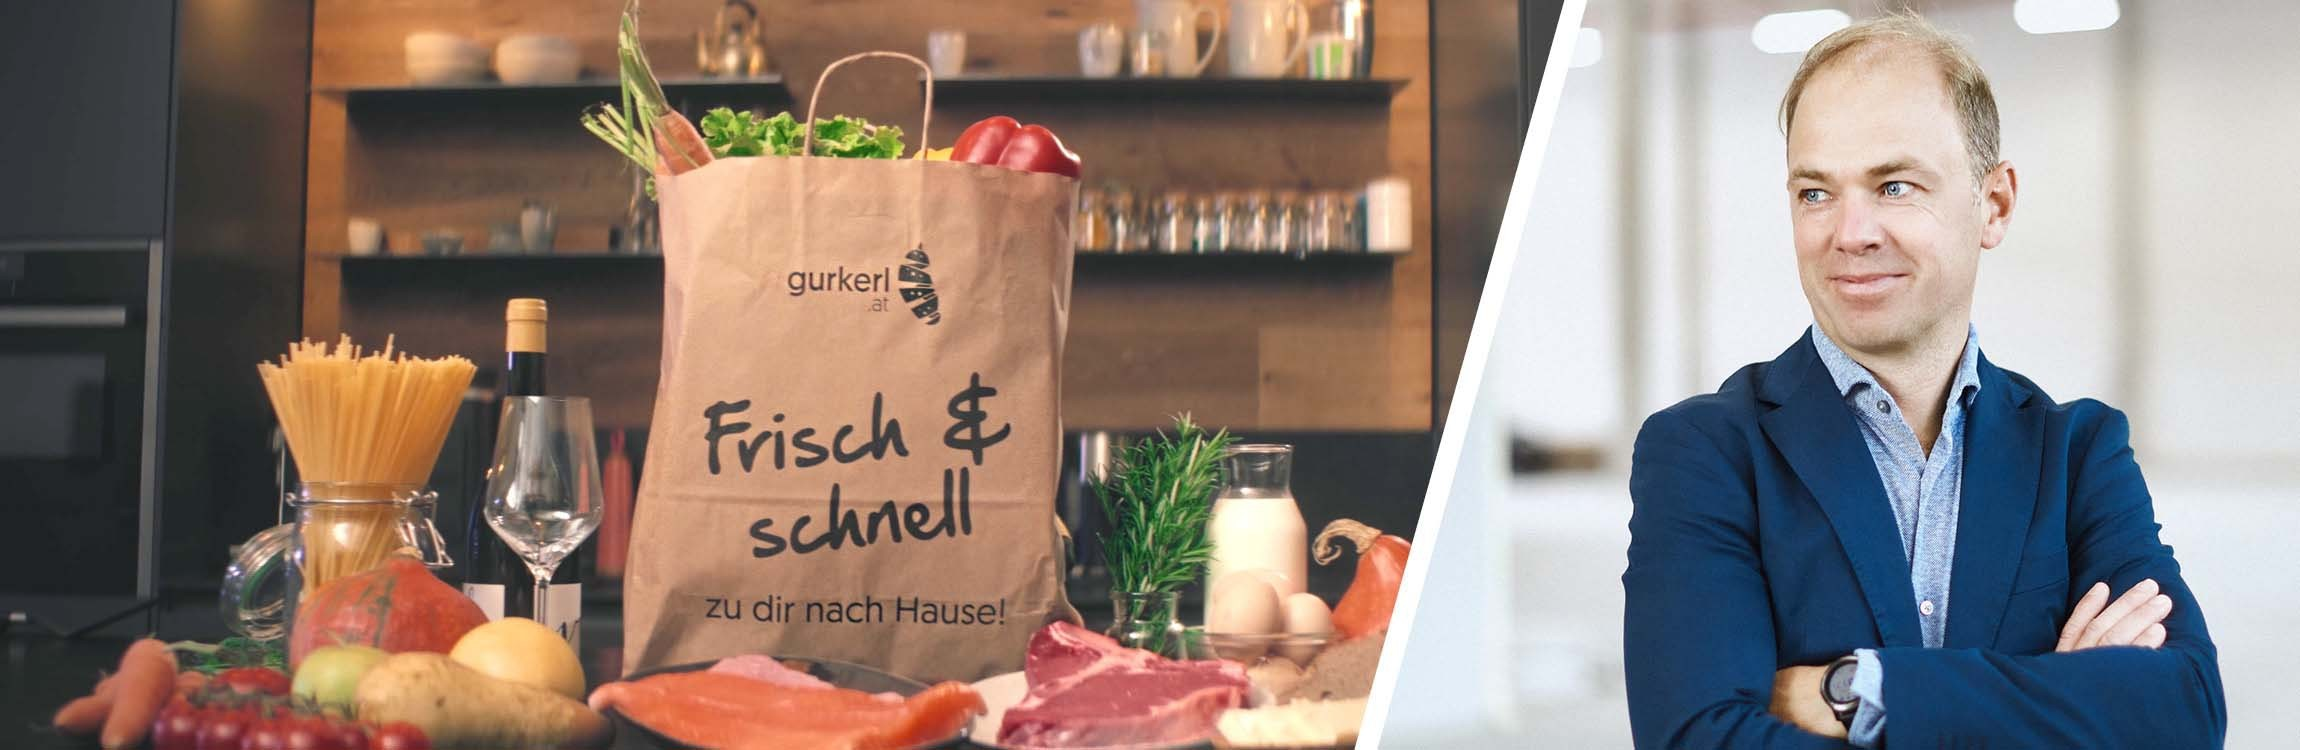 Gurkerl.at: fast and fresh online shopping with service automation.